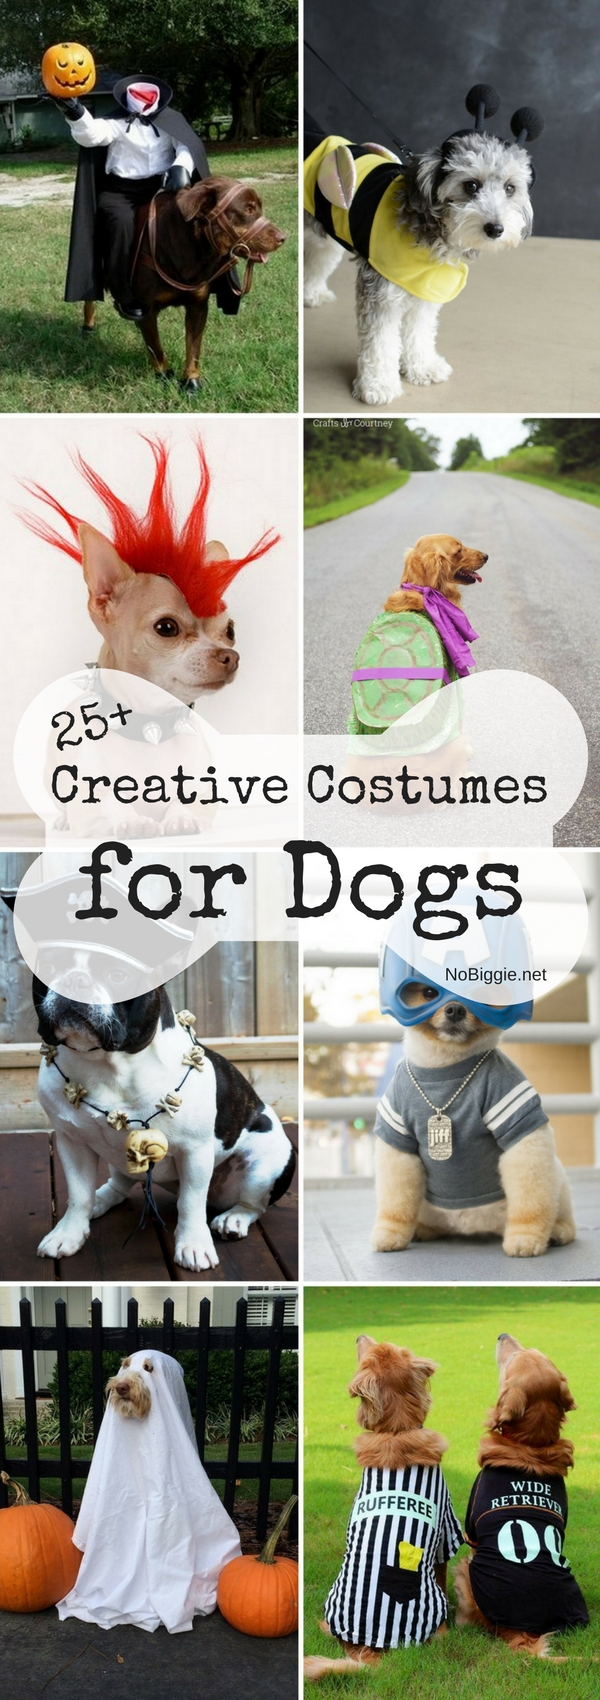 25+ Creative Costumes for Dogs | NoBiggie.net